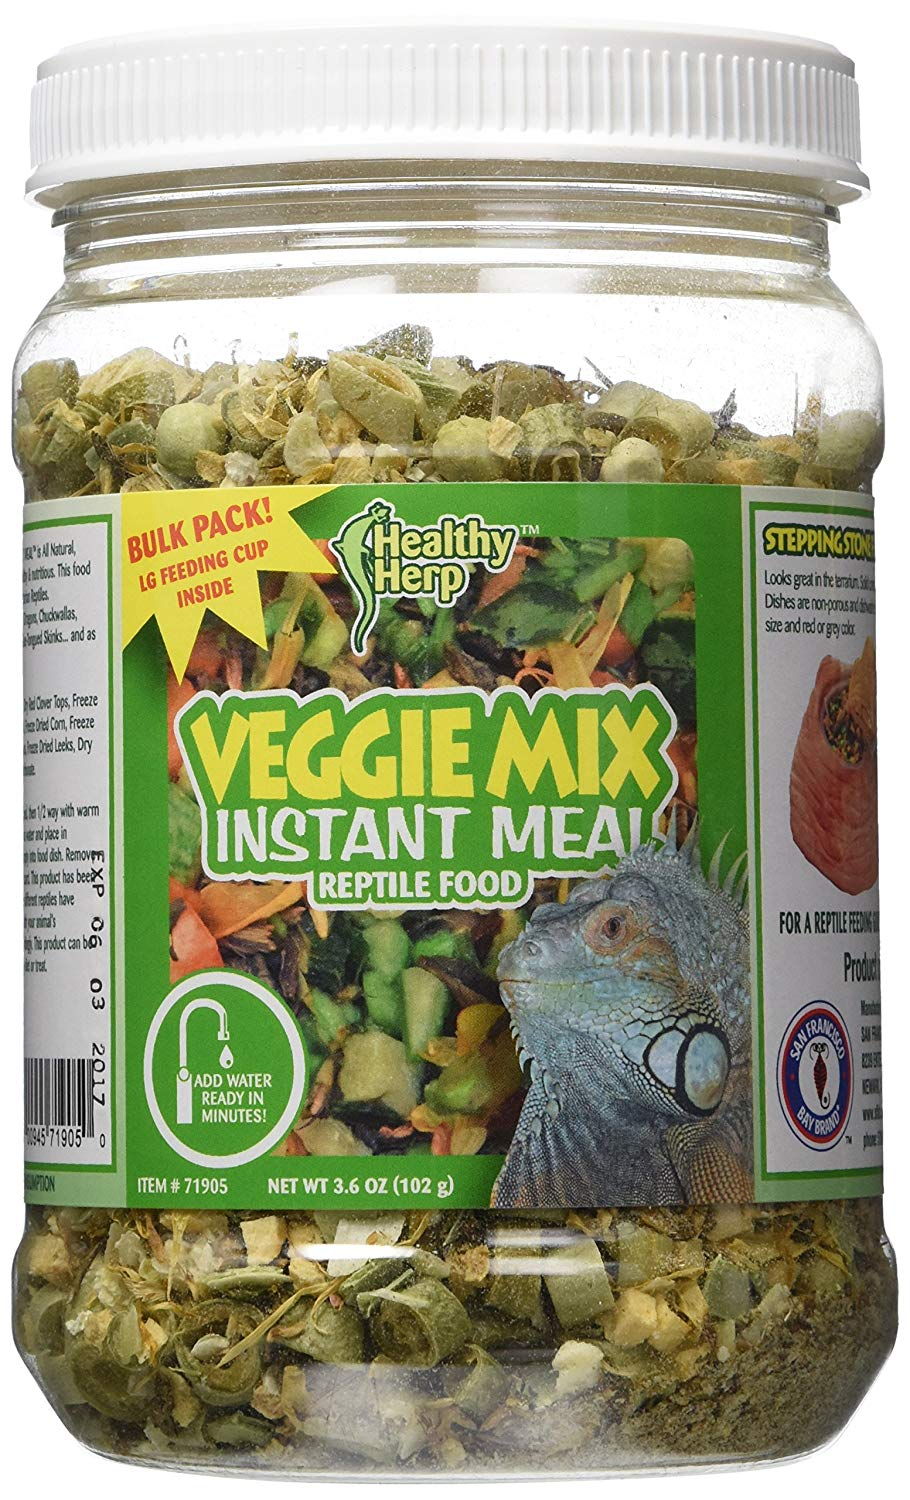 San Francisco Bay Brand SSF71905 Bulk Health Herp Veggie Mix Instant Meal, 3.6-Ounce